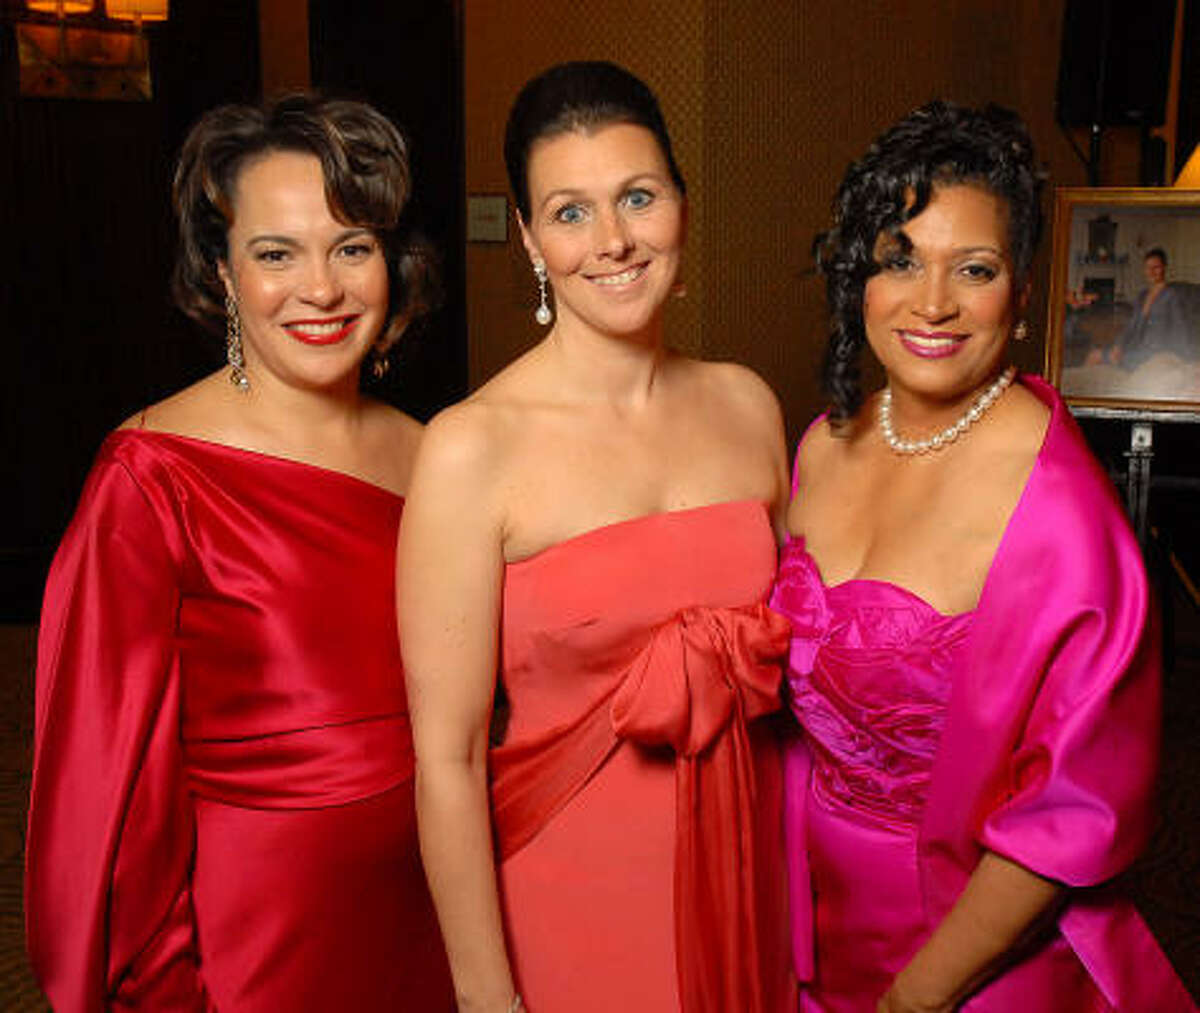 Honorees Rosi Hernendez, from left, Donatella Benckenstein and Cheryl Moore McNair